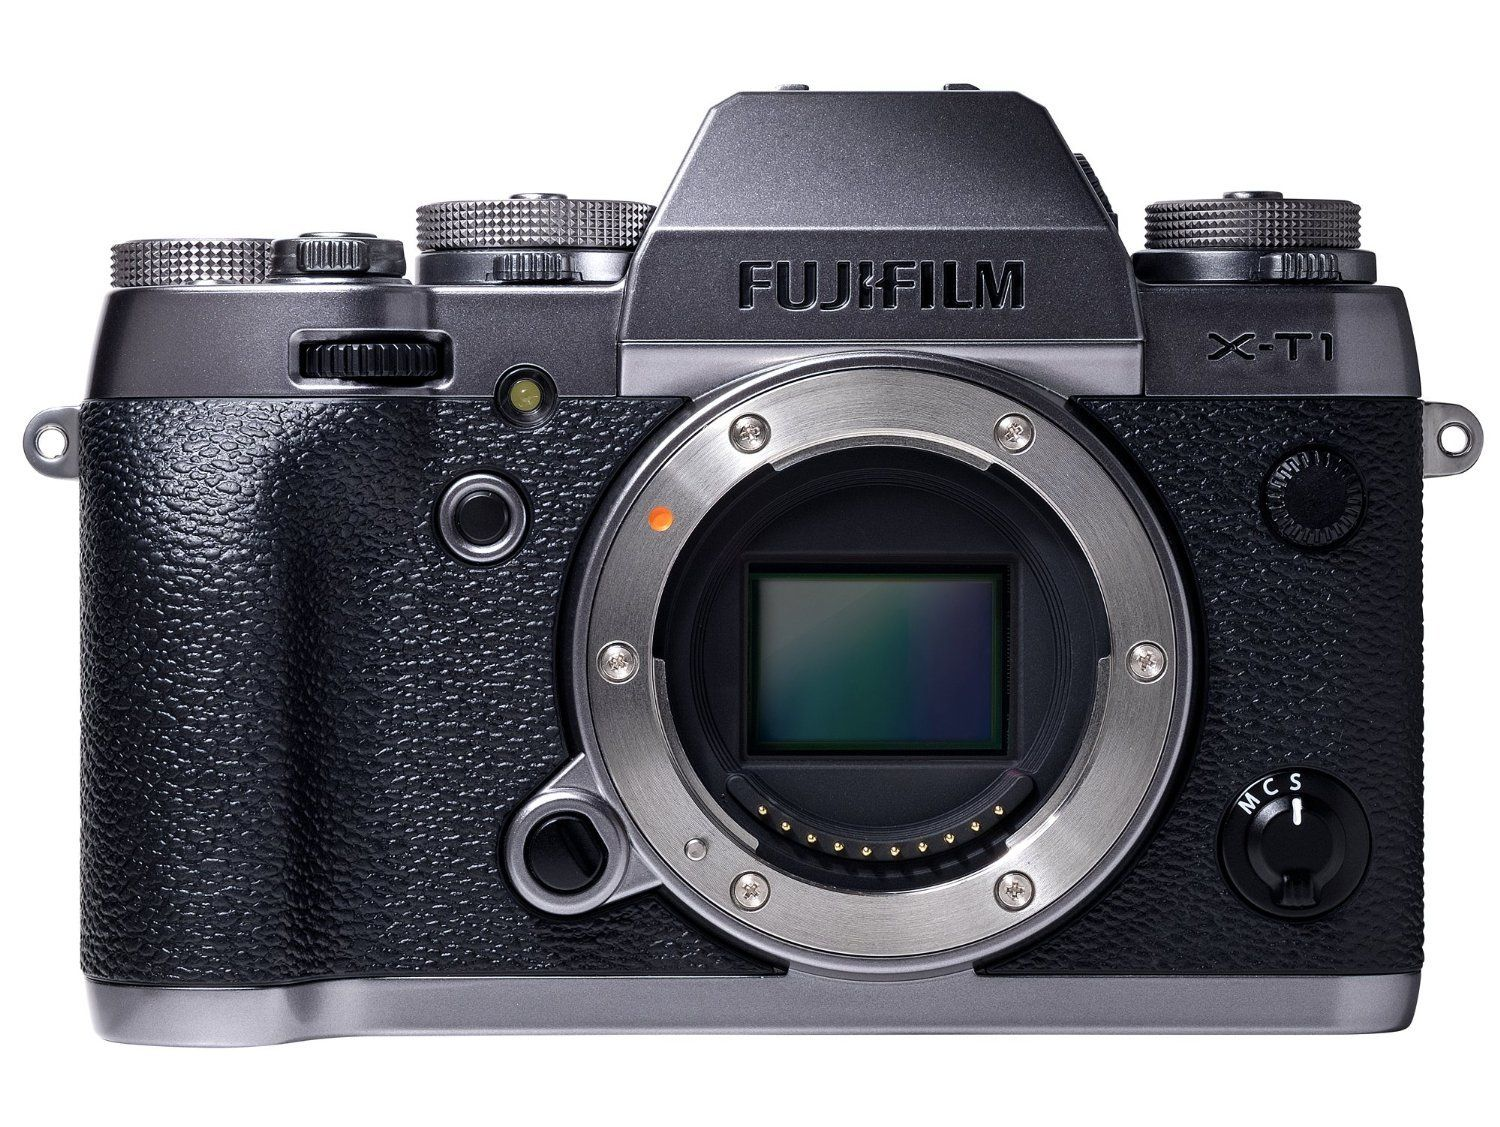 Fujifilm X-T1 Mirrorless Digital Camera (Graphite Silver Body Only ...